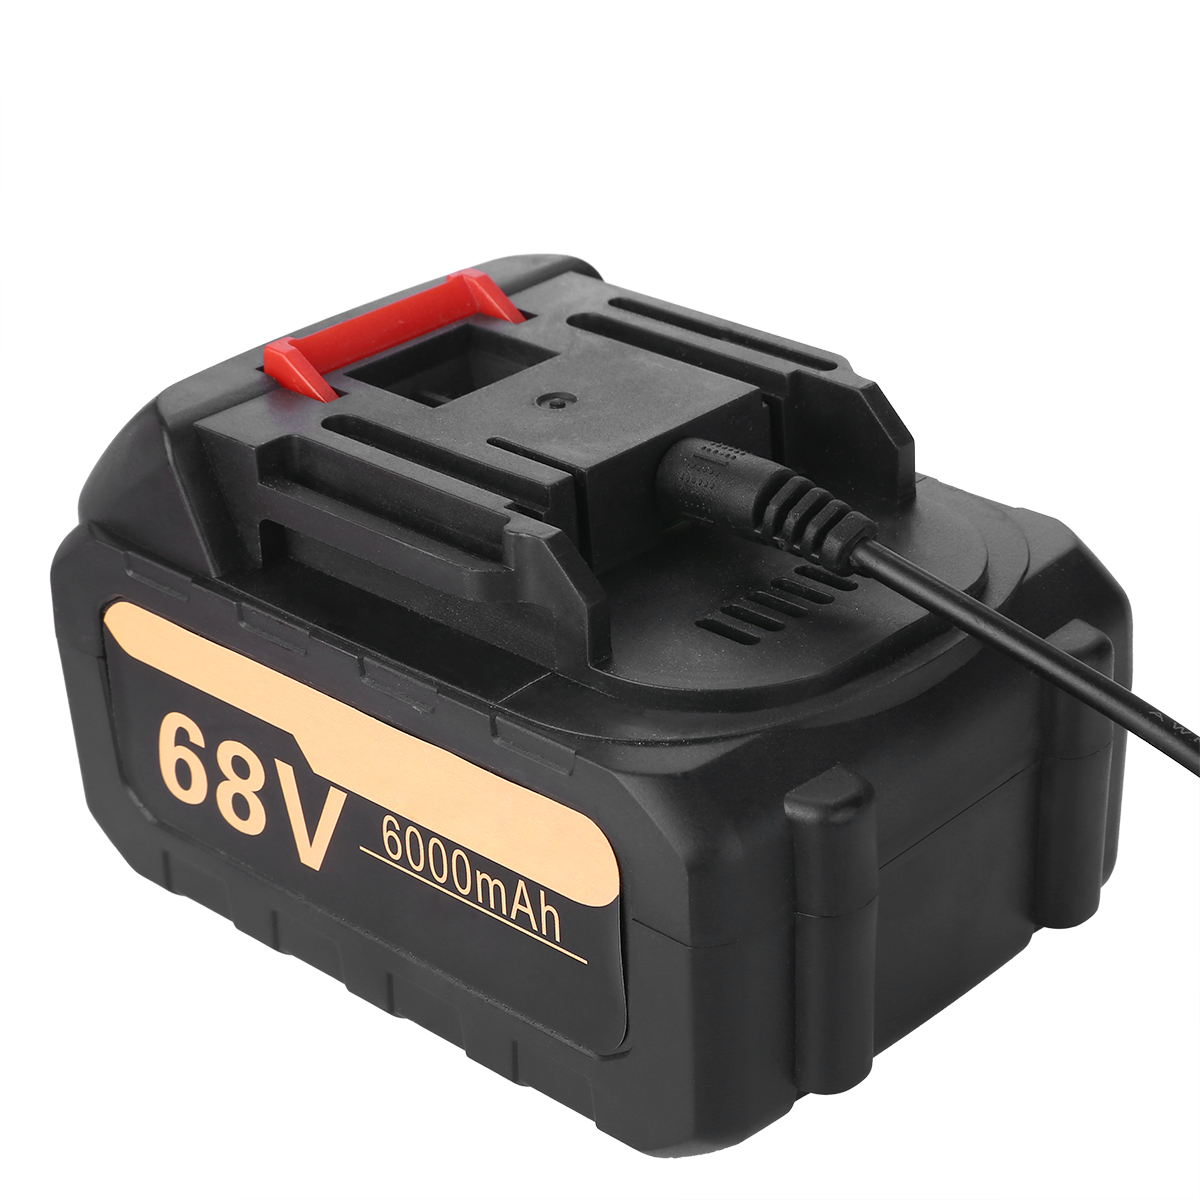 3300RPM 380Nm Brushless Cordless Electric Impact Wrench Tool 6000mAh 68V Battery